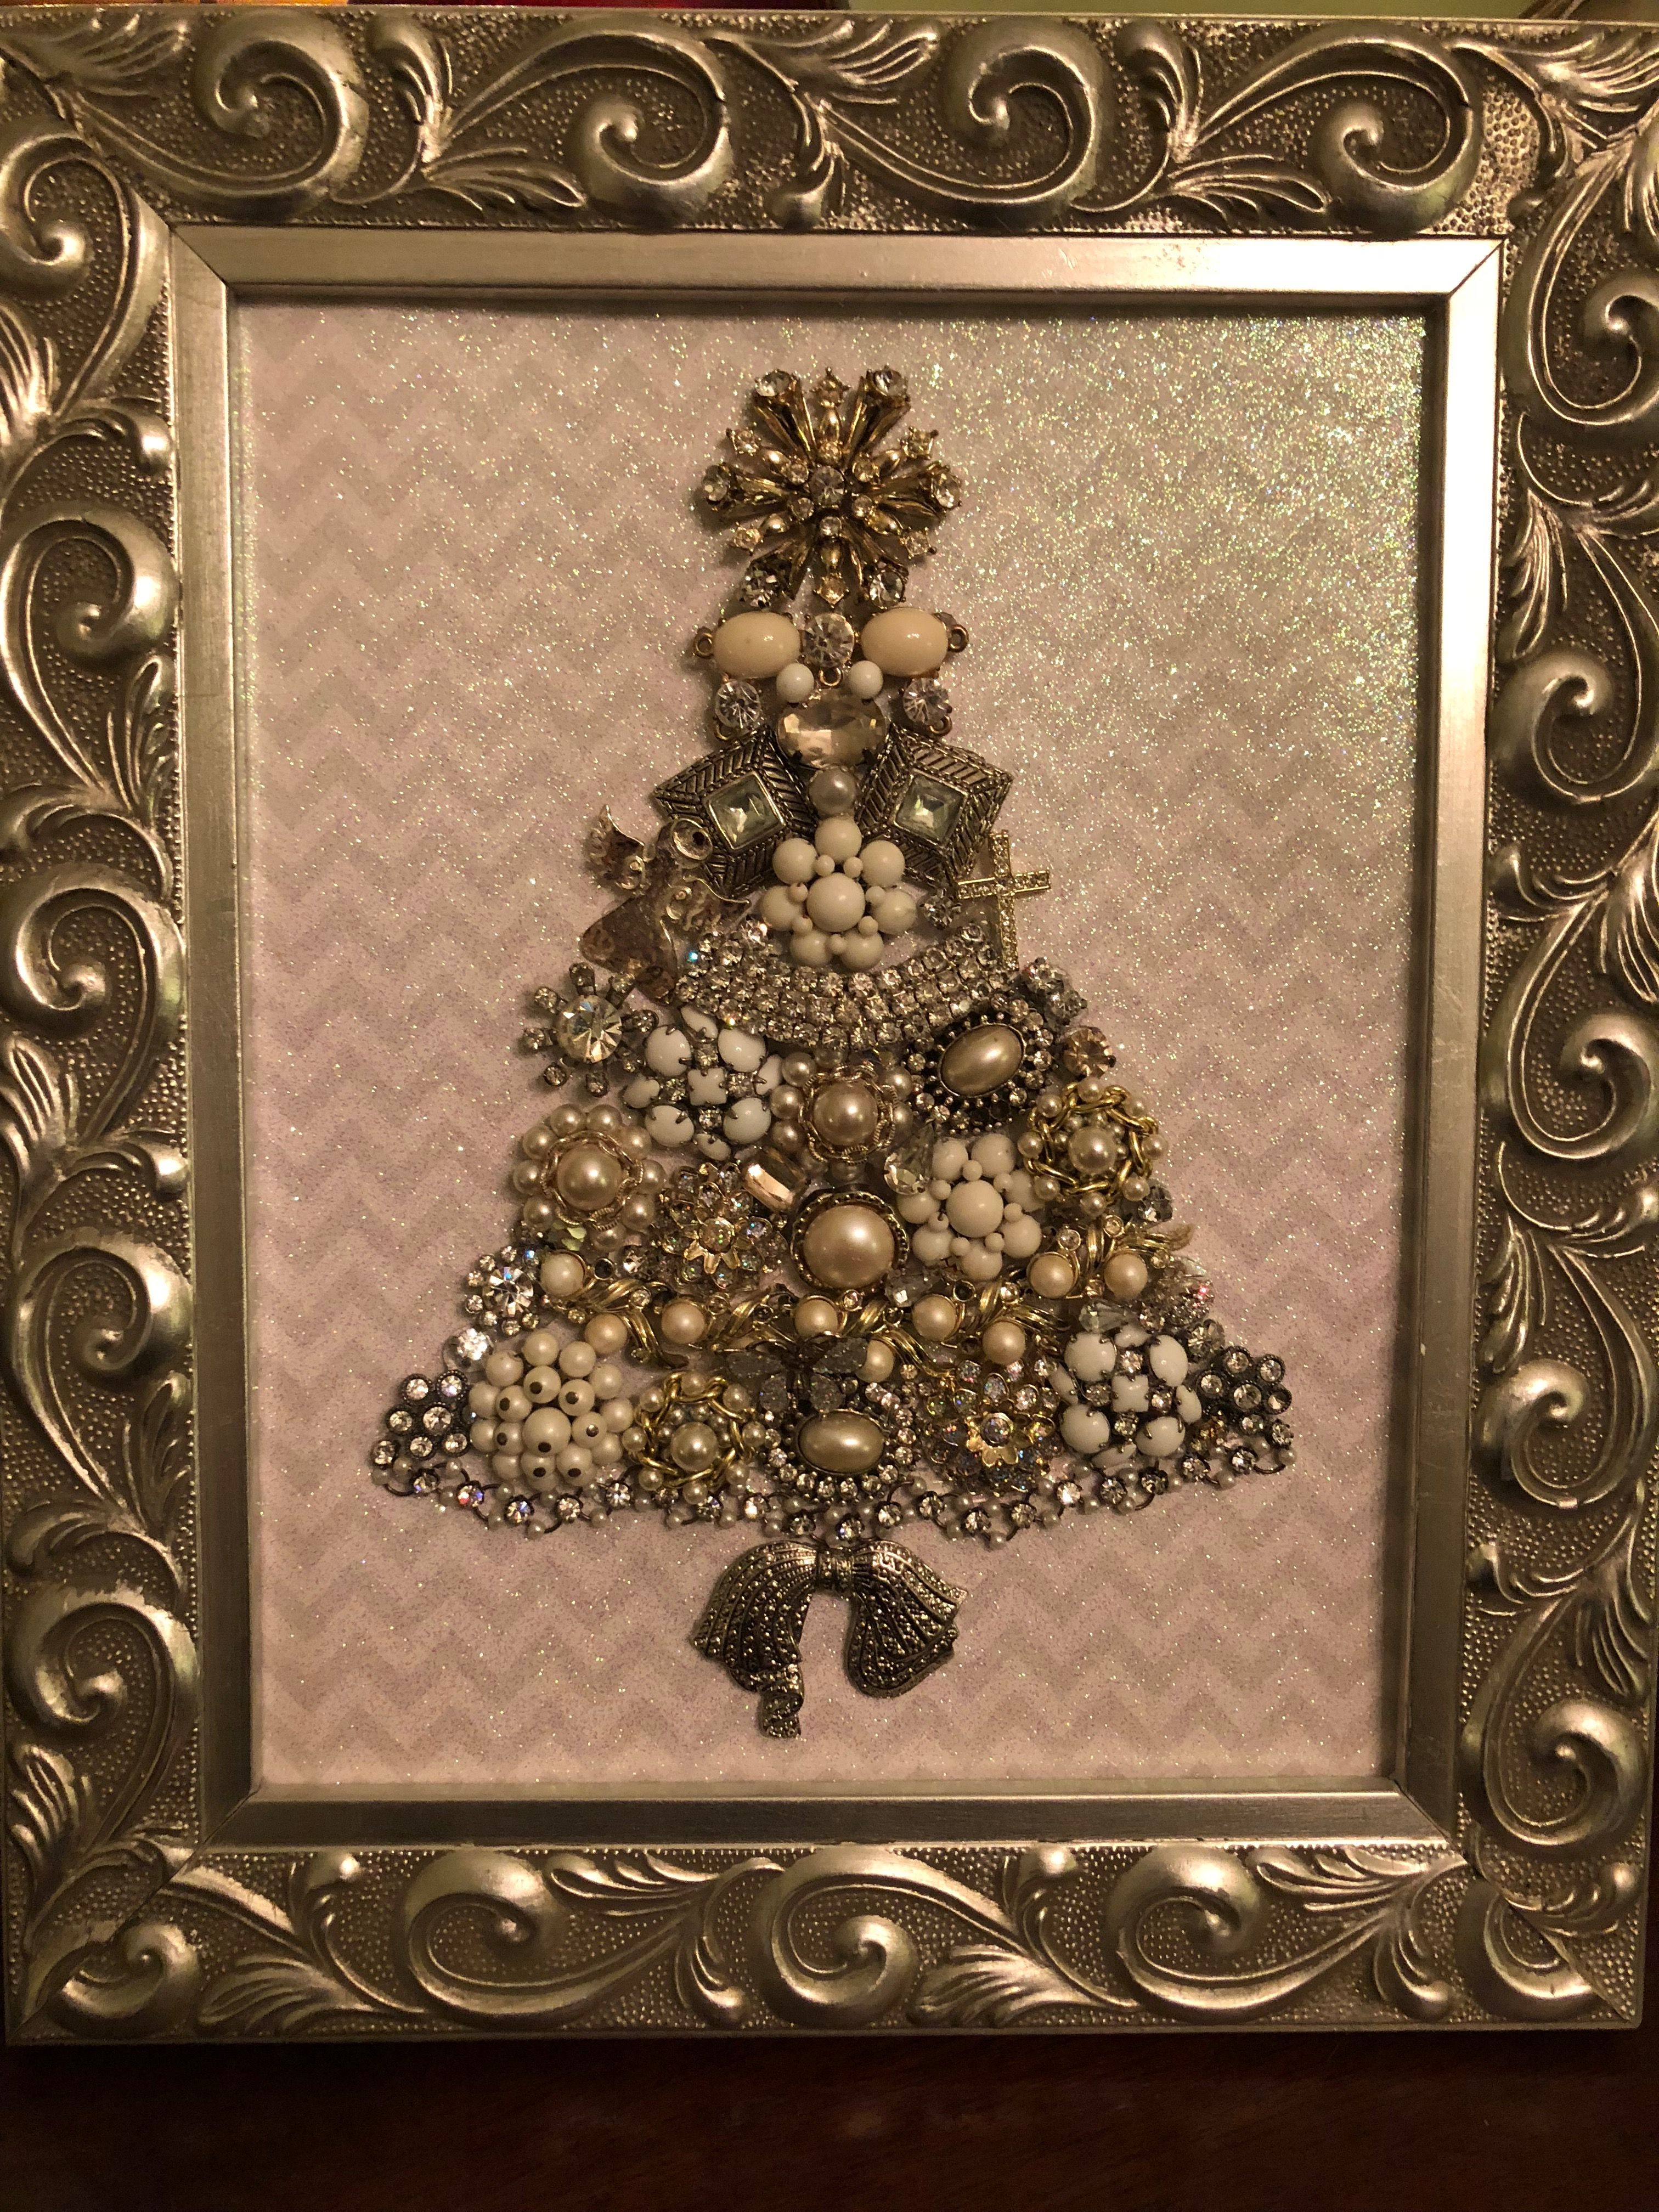 Made This Stunning Piece Ornate Silver Wooden Framed Vintage